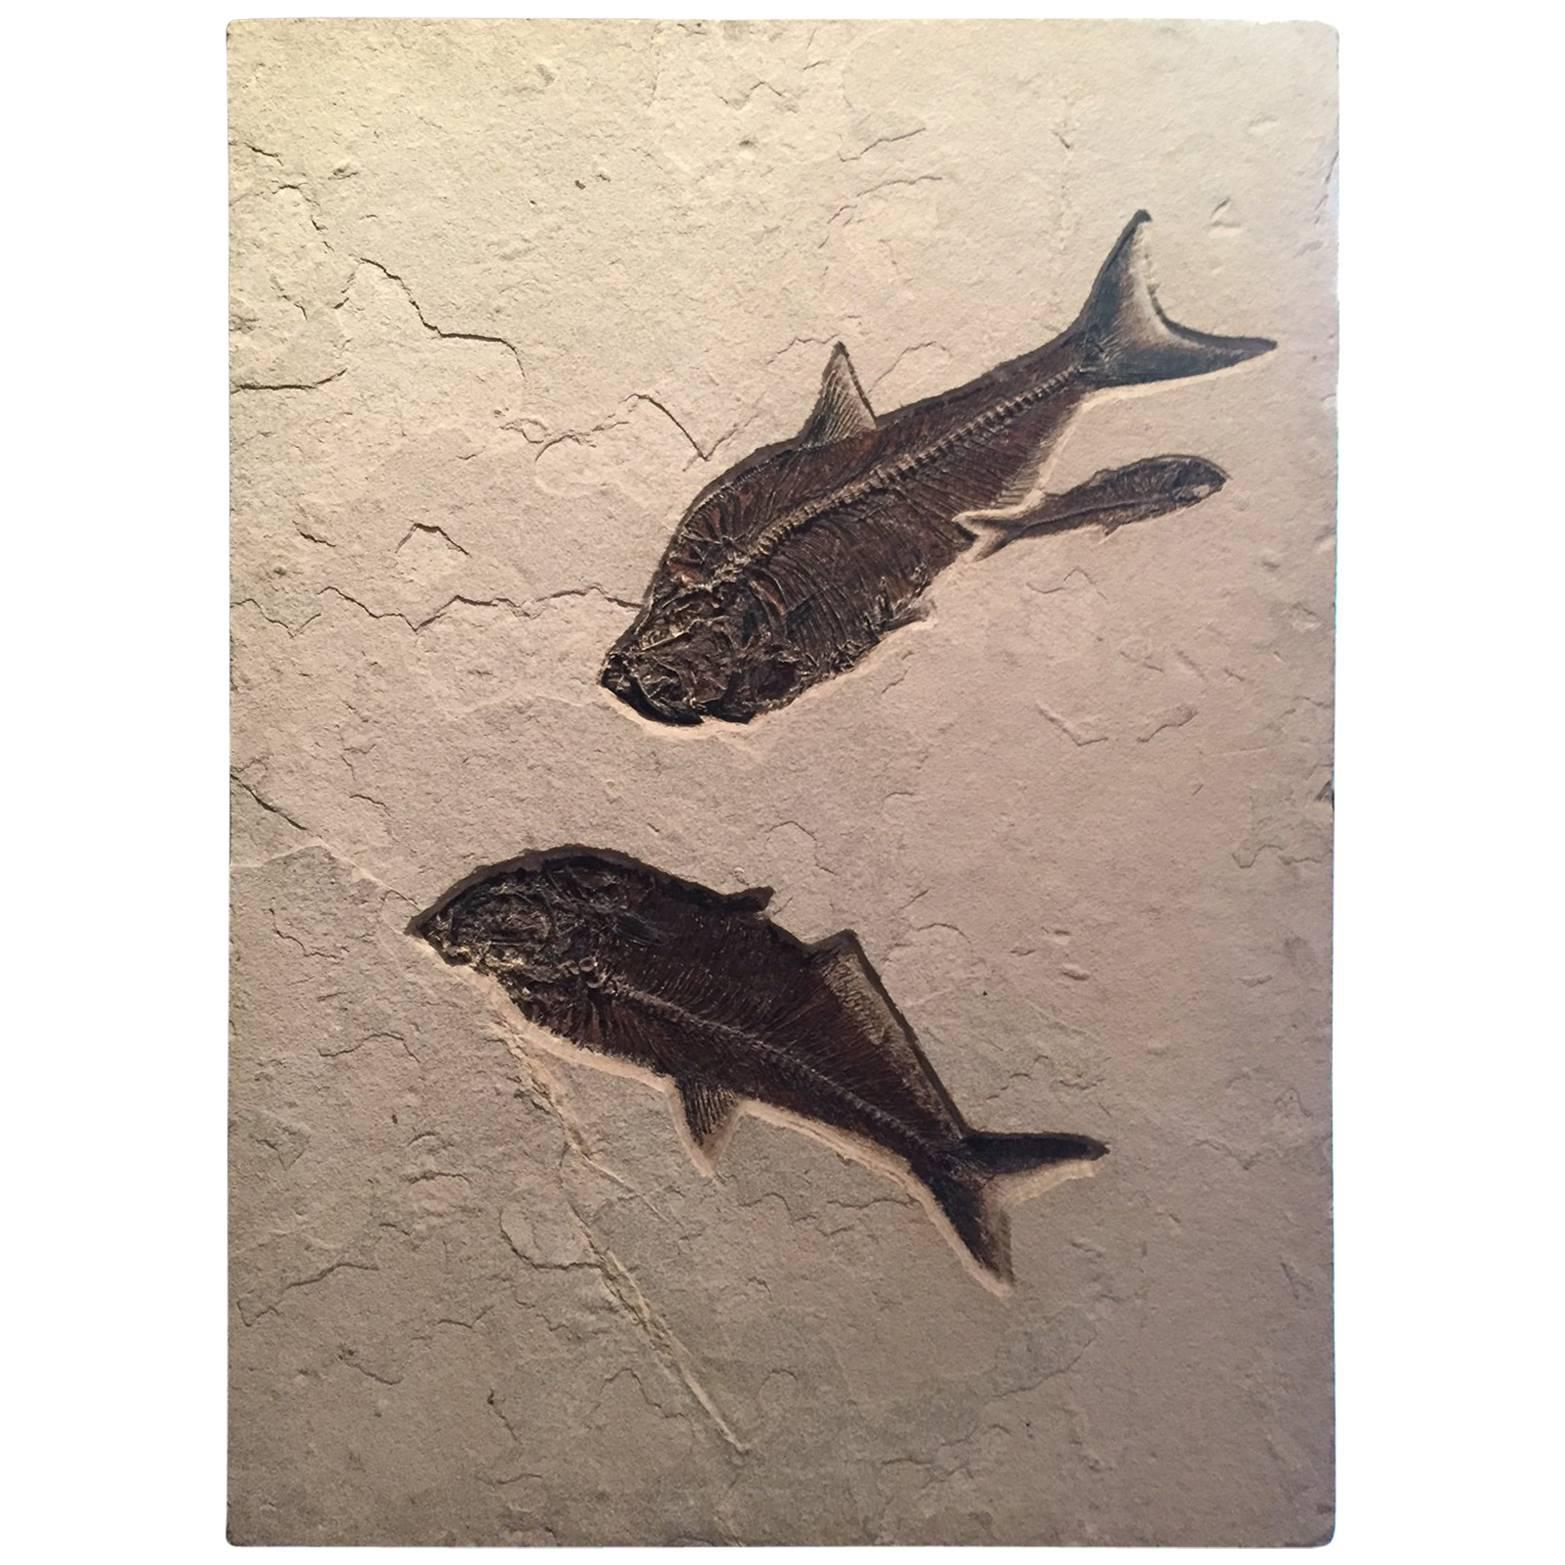 Eocene Era Fossil of a Group of Fish from the Green River Formation, Wyoming